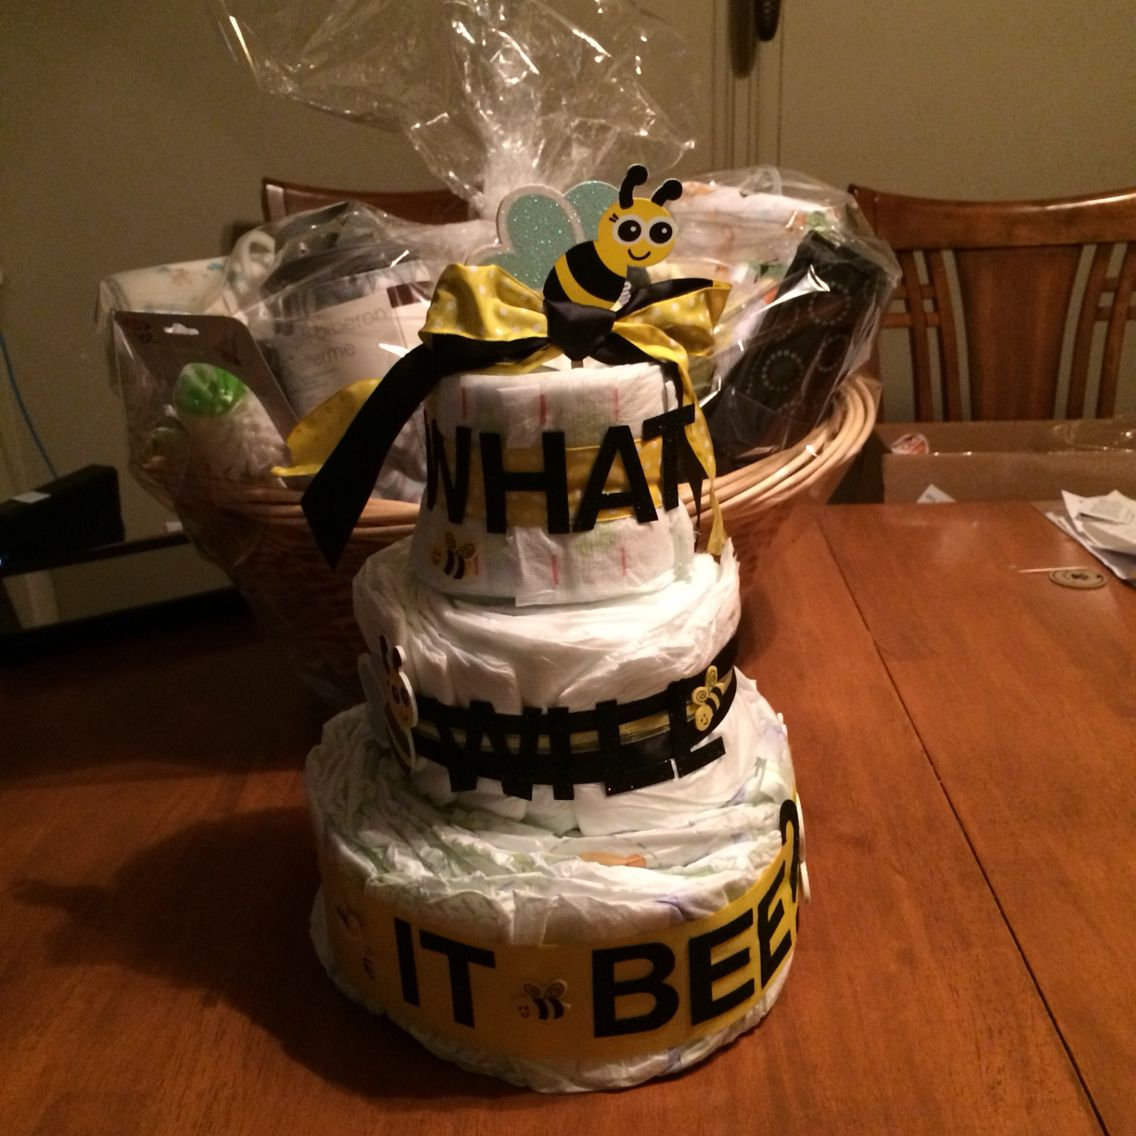 A diaper cake for a unisex baby shower with a gift basket